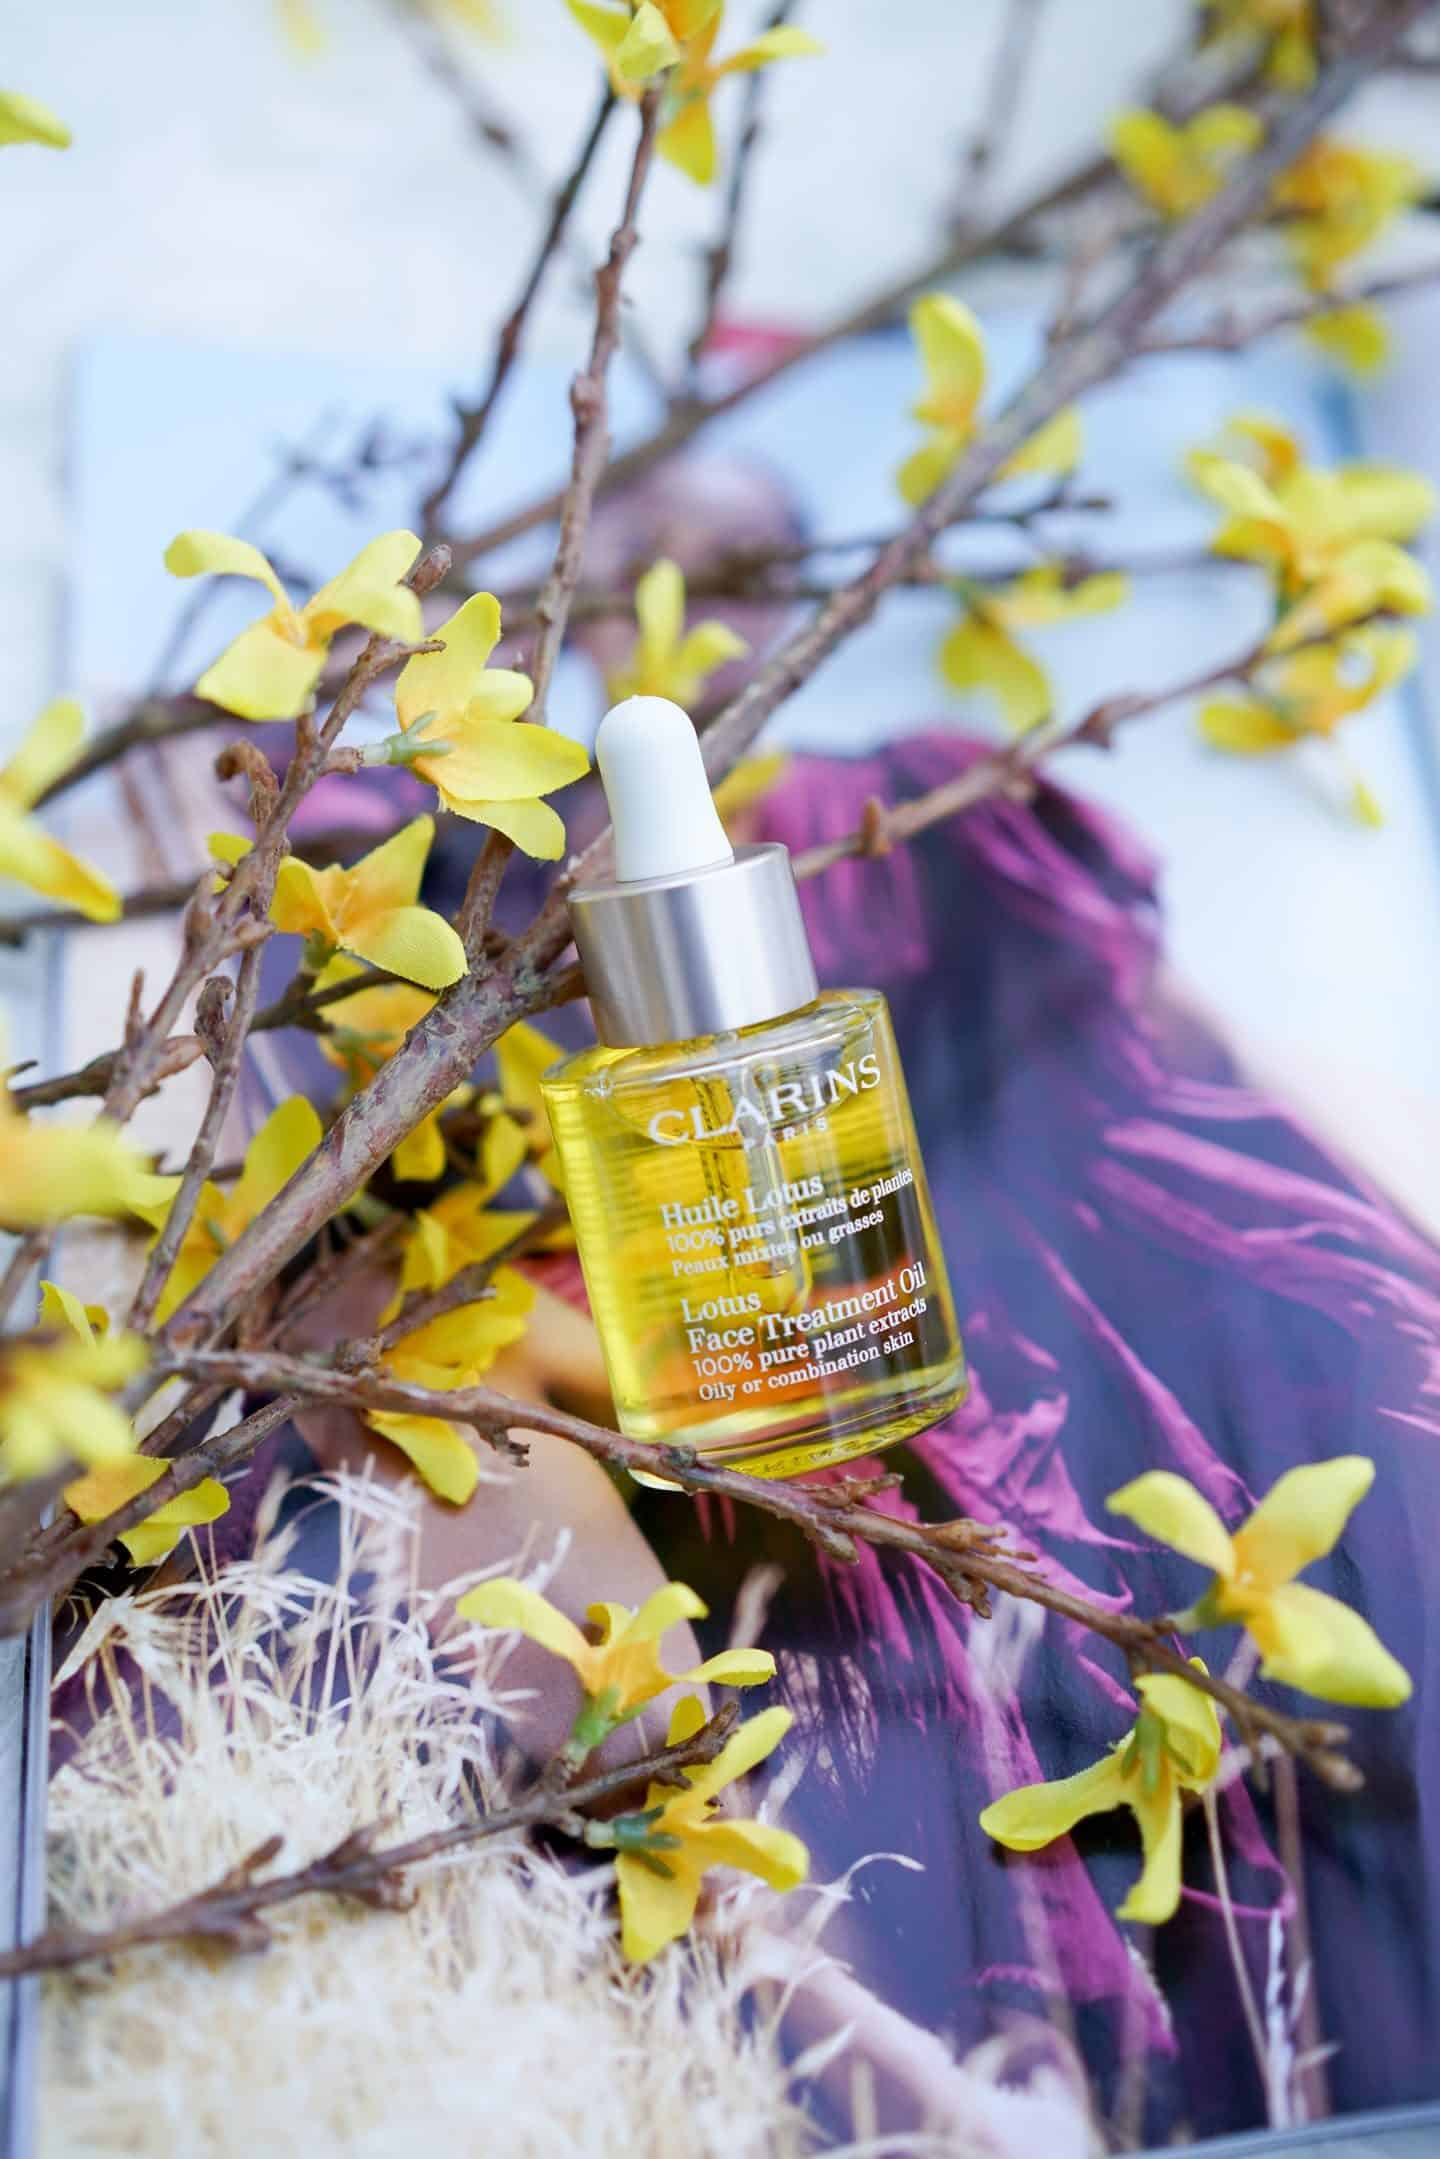 Clarins Face Treatment Oil, Beauty review, Chicago Blogger, A Lily Love Affair